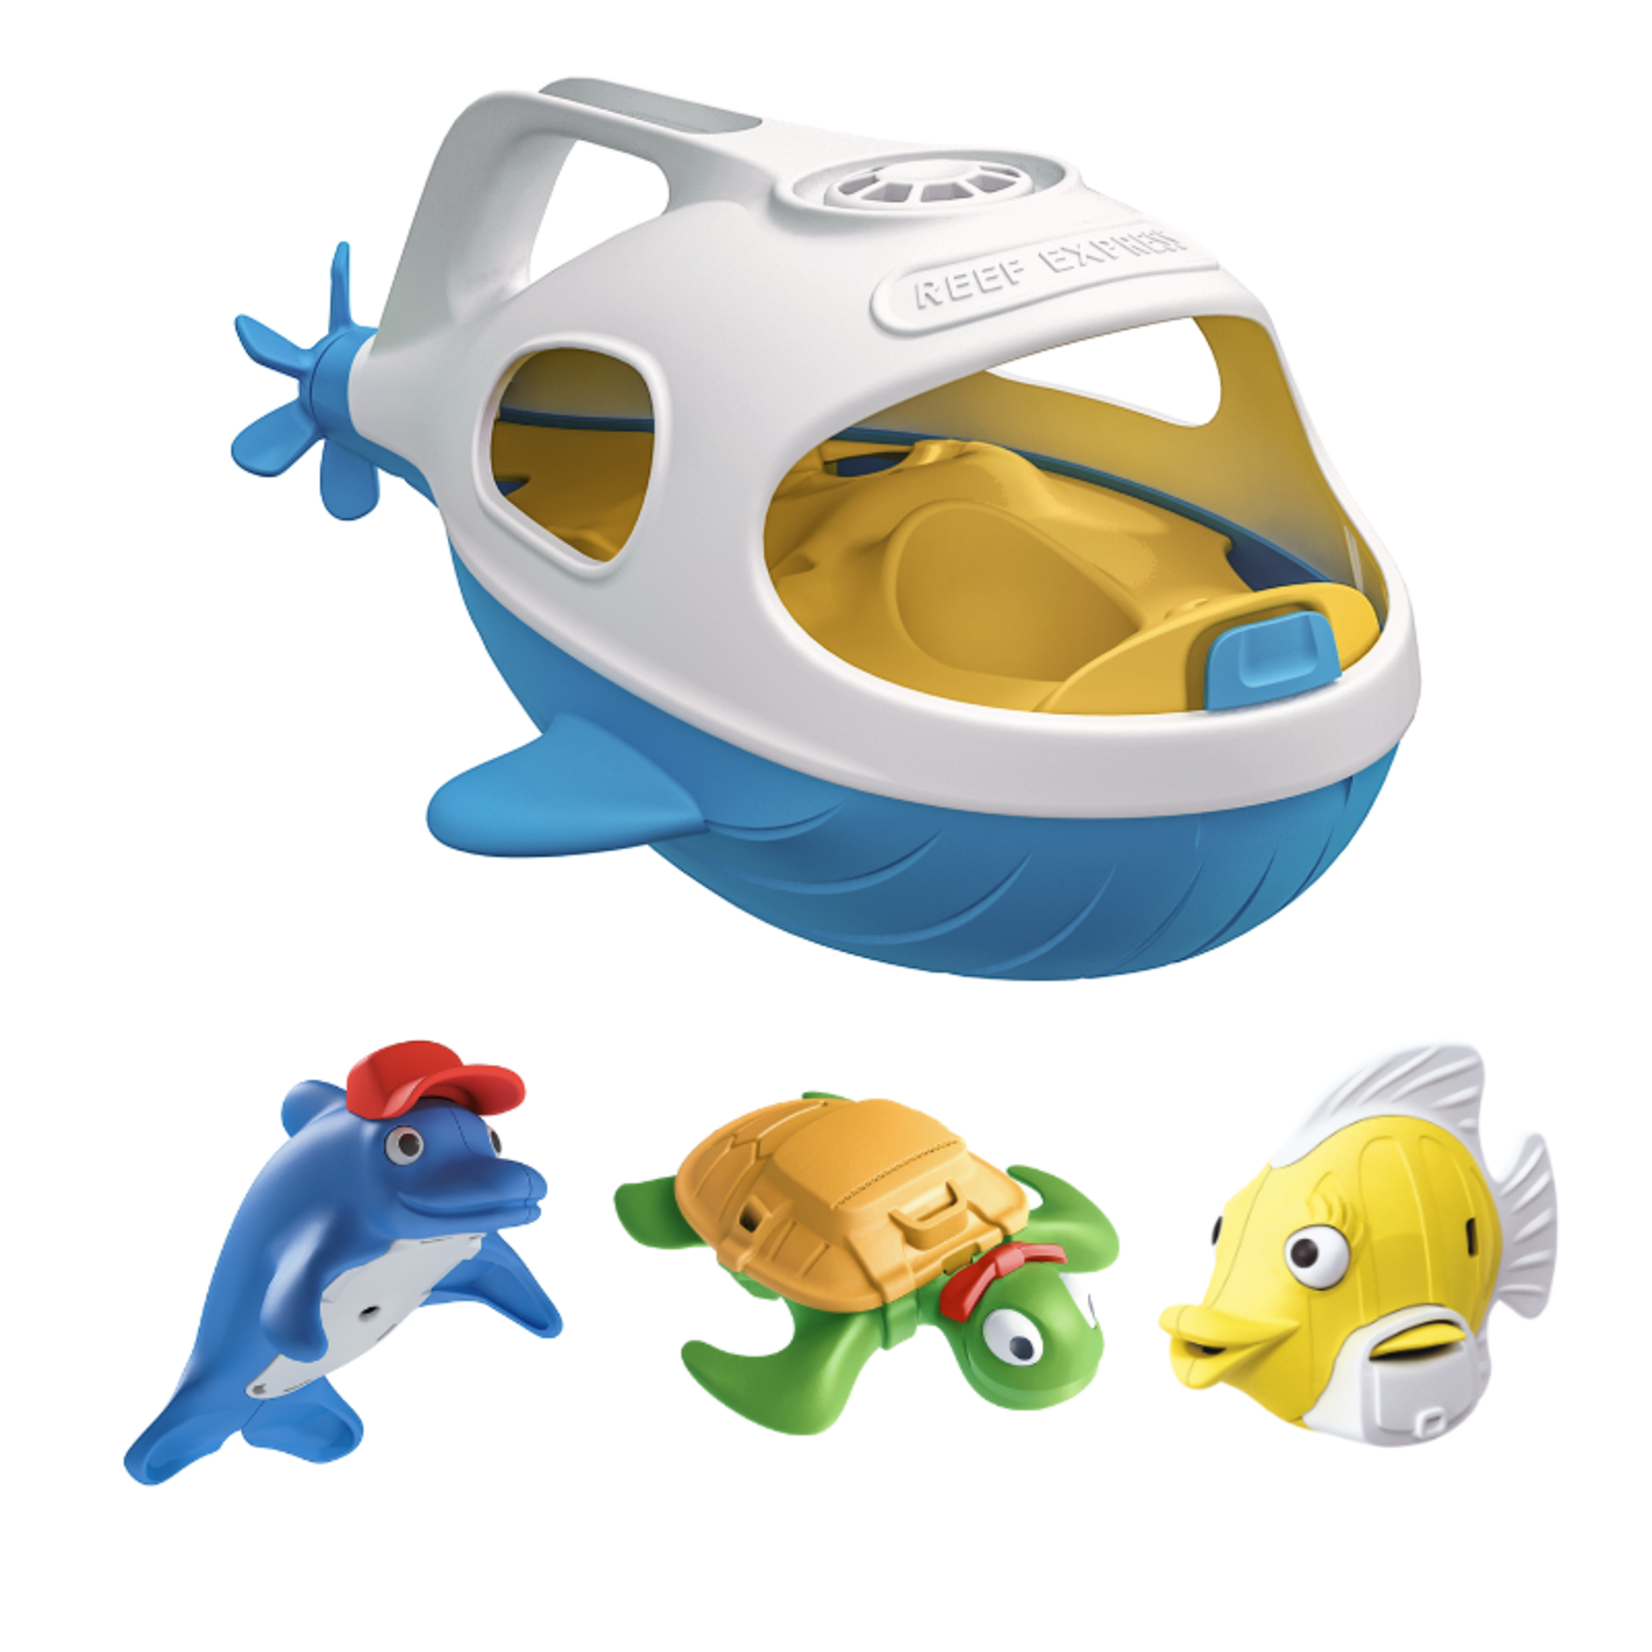 Happy Planet Toys Happy Planet Toys - Reed Express Bath Toy Set